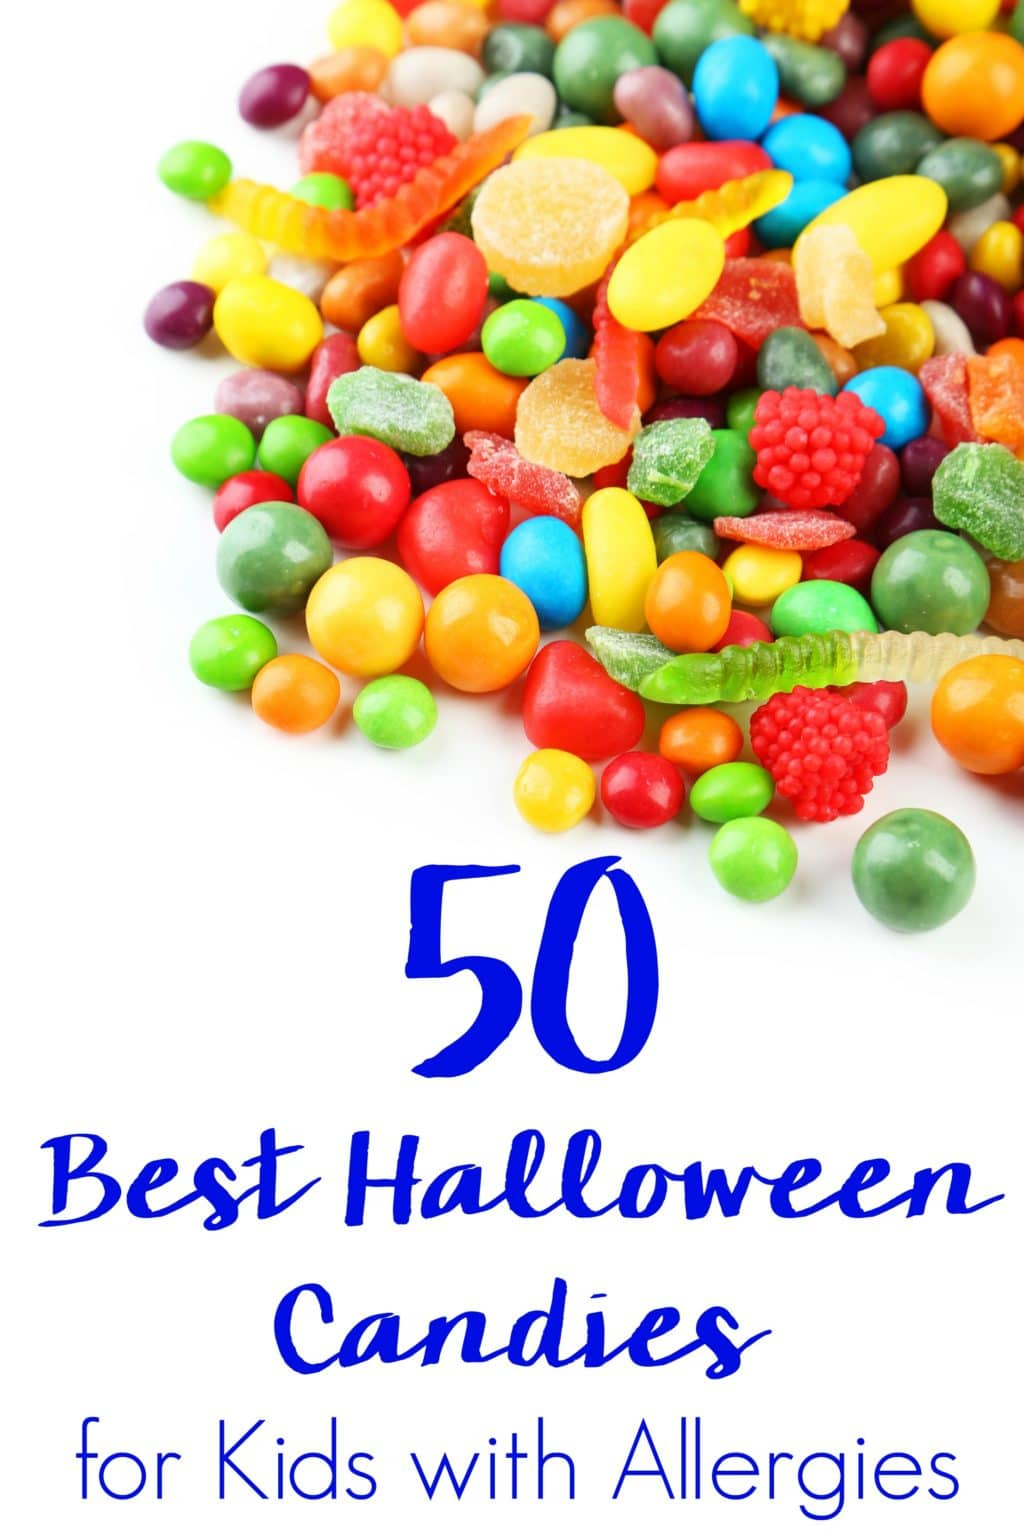 Best Halloween Candy for Kids with Allergies (Big List of 50)